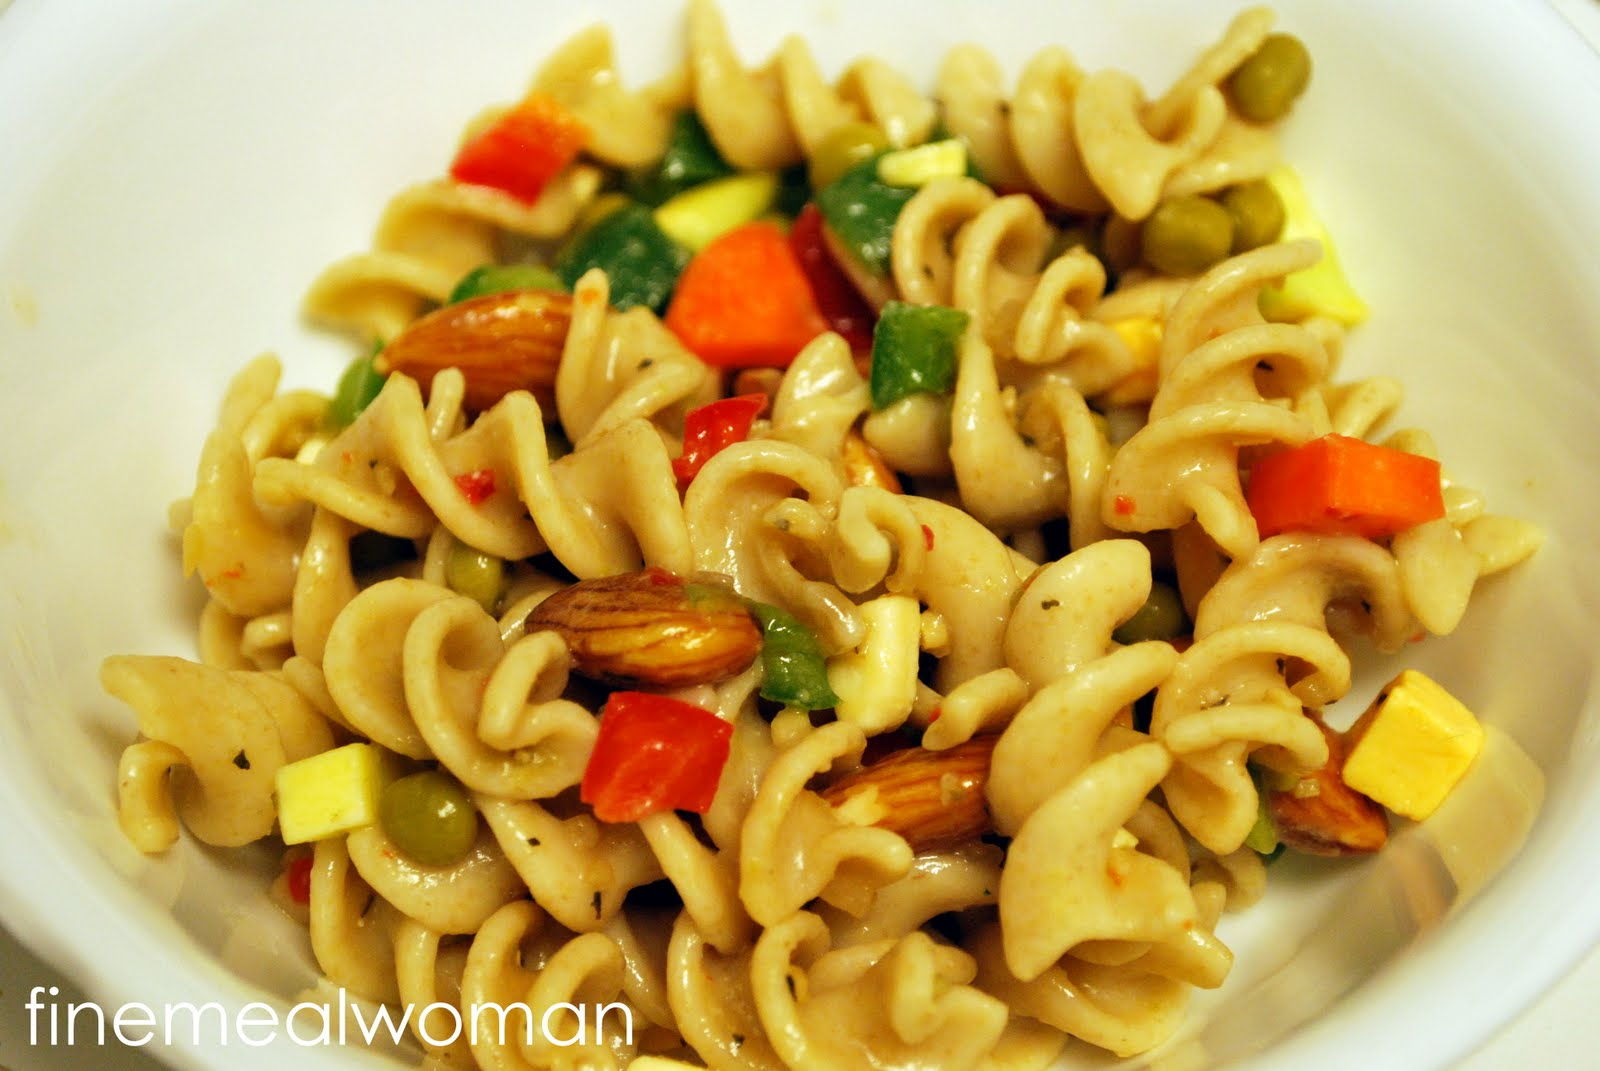 Fine Meal Woman Picnic Pasta Salad